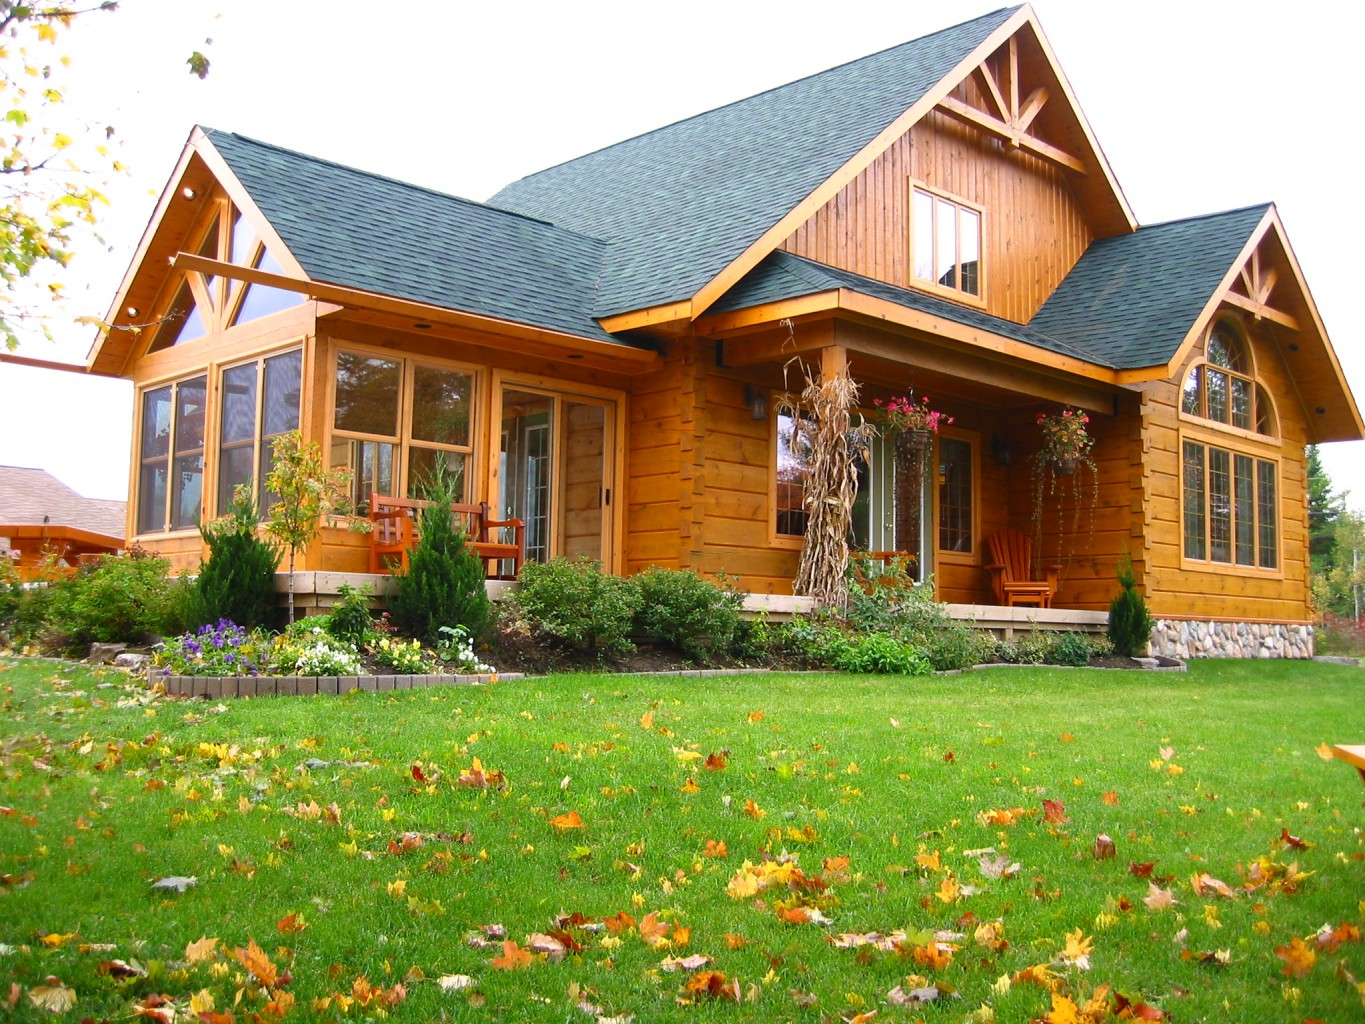 View our model open 7 days a week holiday hours 10 4 for Log home plans ontario